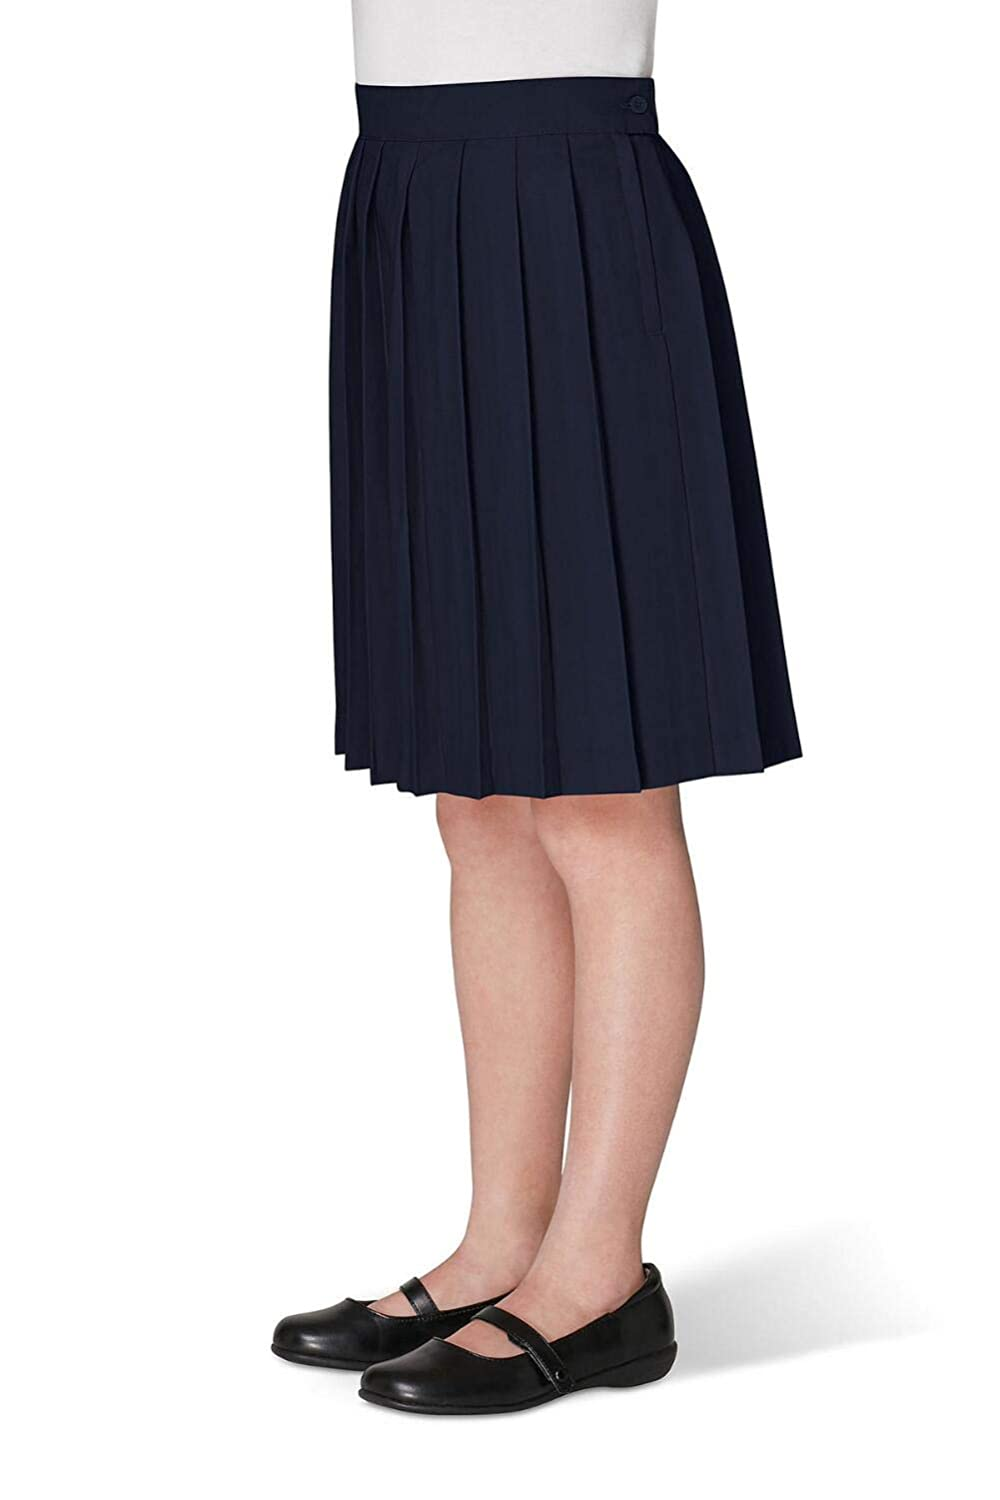 French Toast Pleated Skirt (Regular Waist) Girls French Toast School Uniforms 1066X